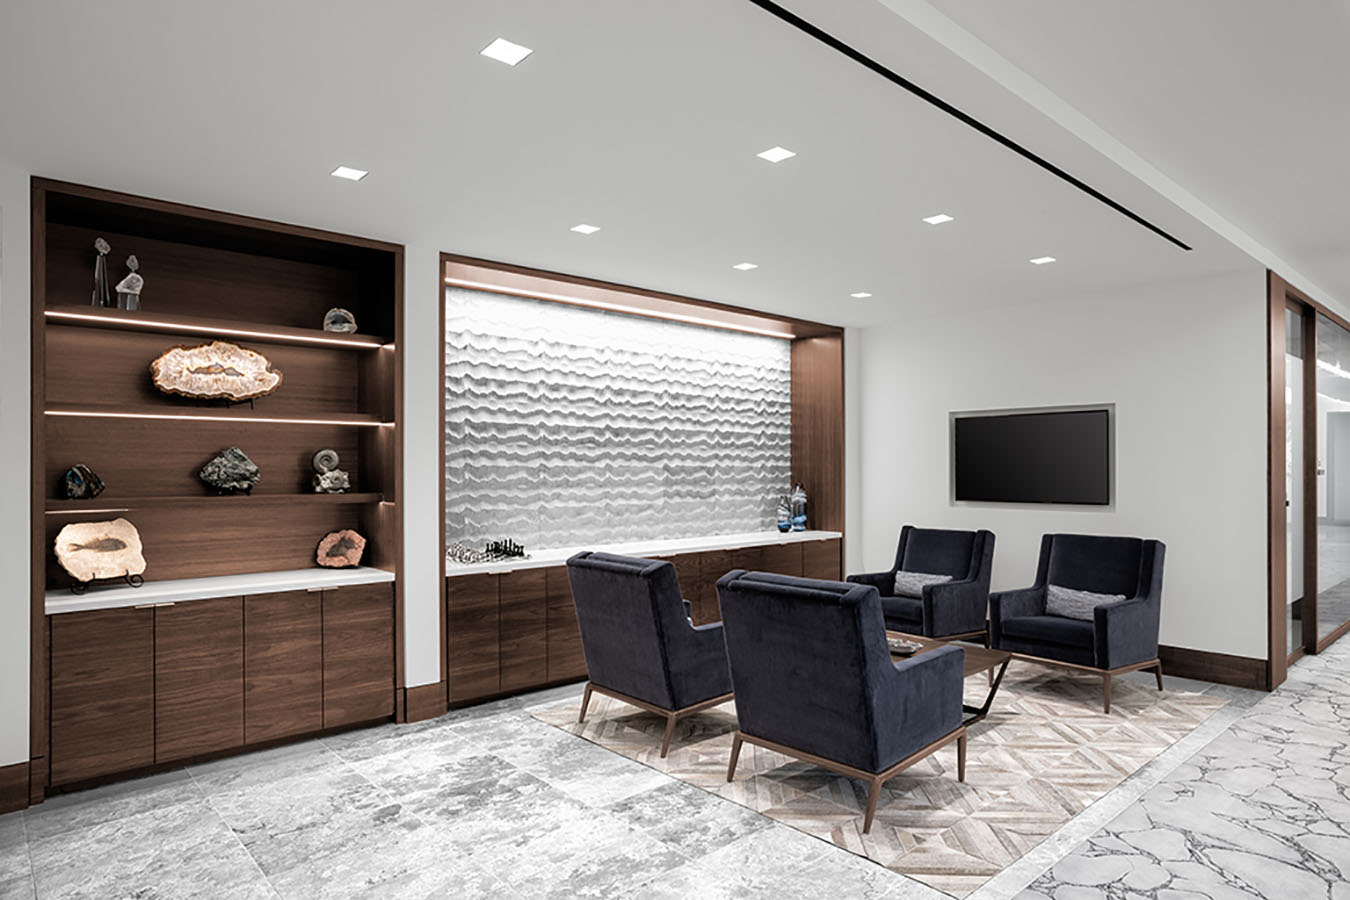 Corporate Interior Design Newfield Exploration Executive Floor Informal Seating Area Agate Display Wall